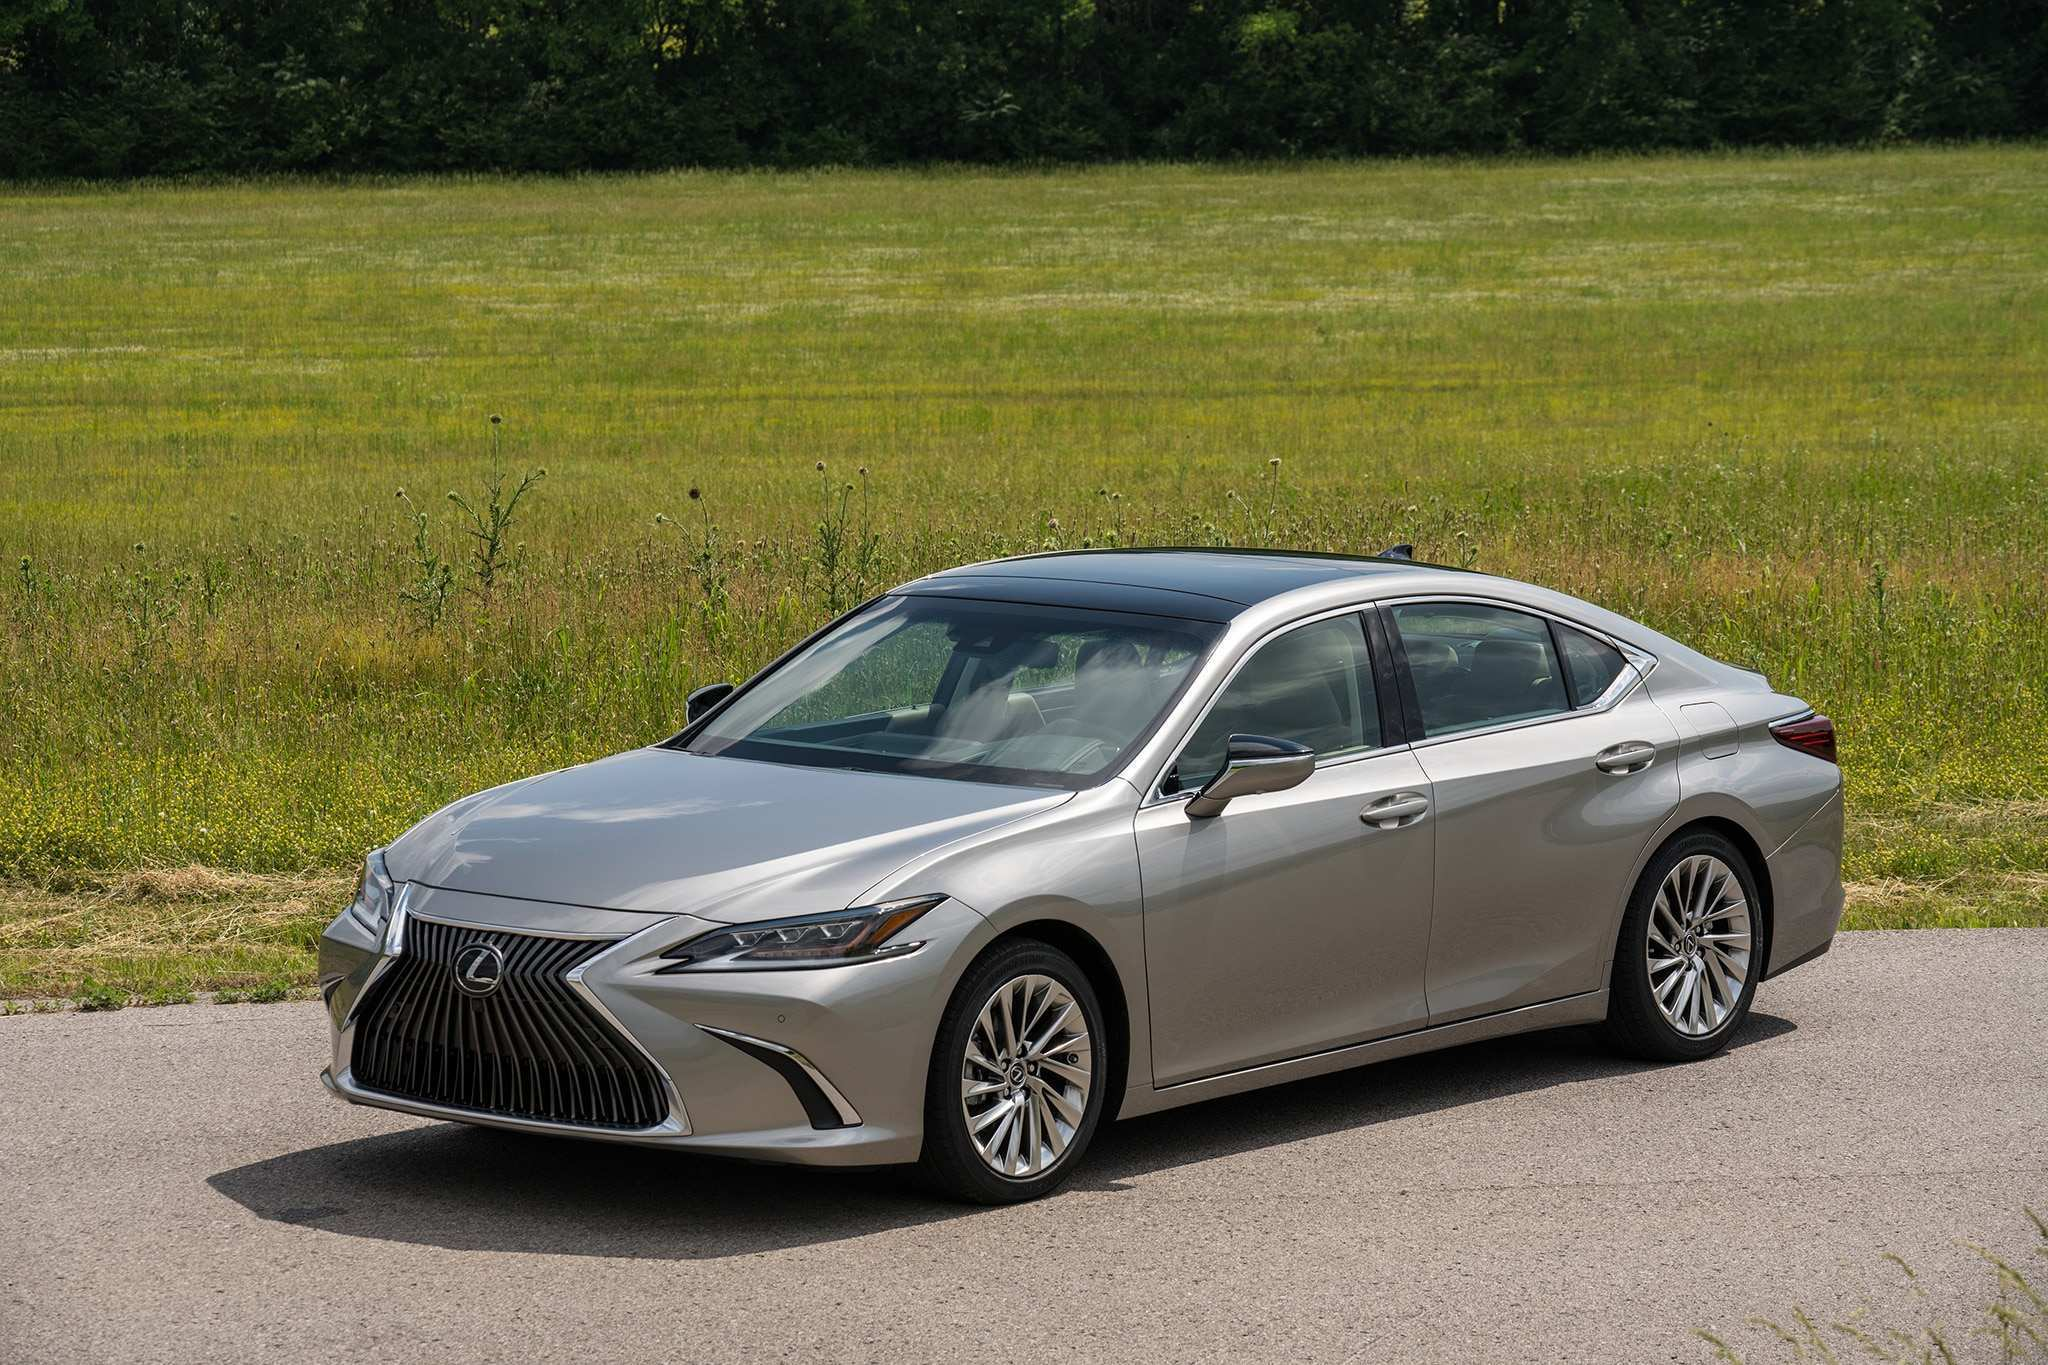 51 Gallery of 2019 Lexus Es Hybrid Rumors Ratings for 2019 Lexus Es Hybrid Rumors